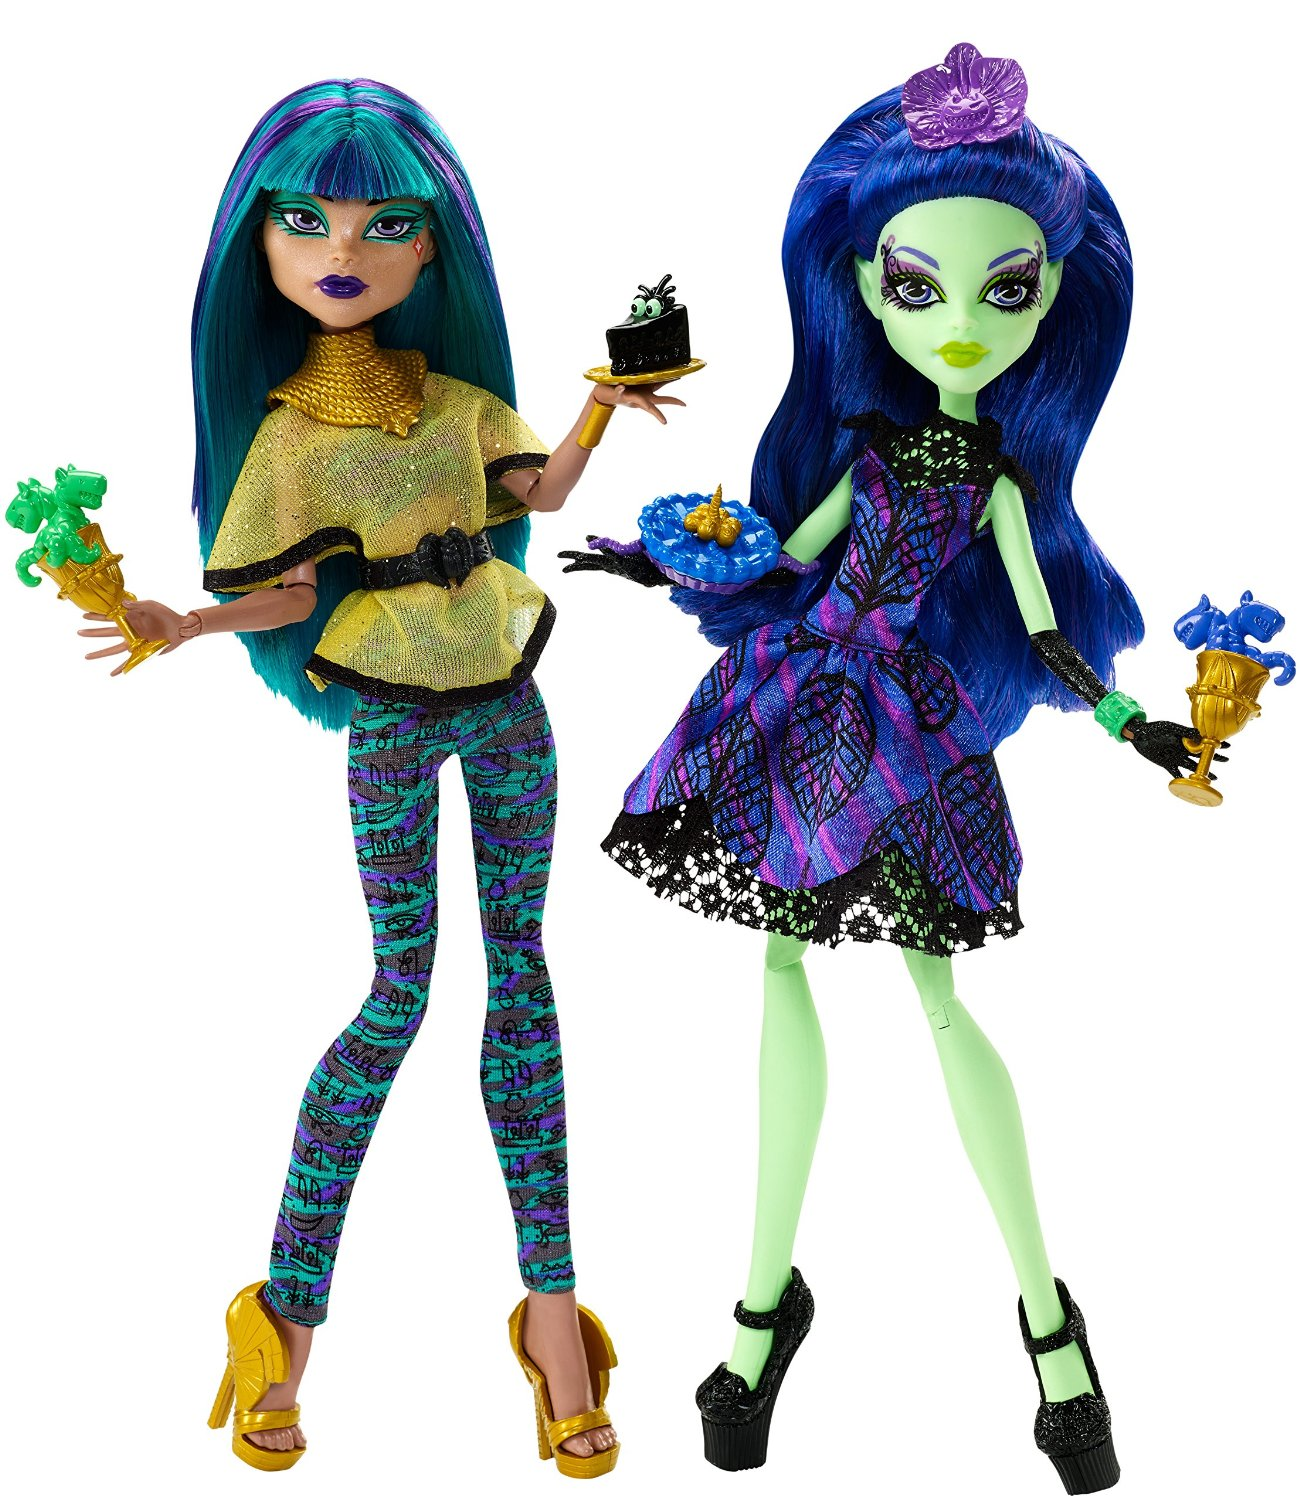 Mattel Monster High Křik a cukr Amanita Nightshade a Nefera de Nile